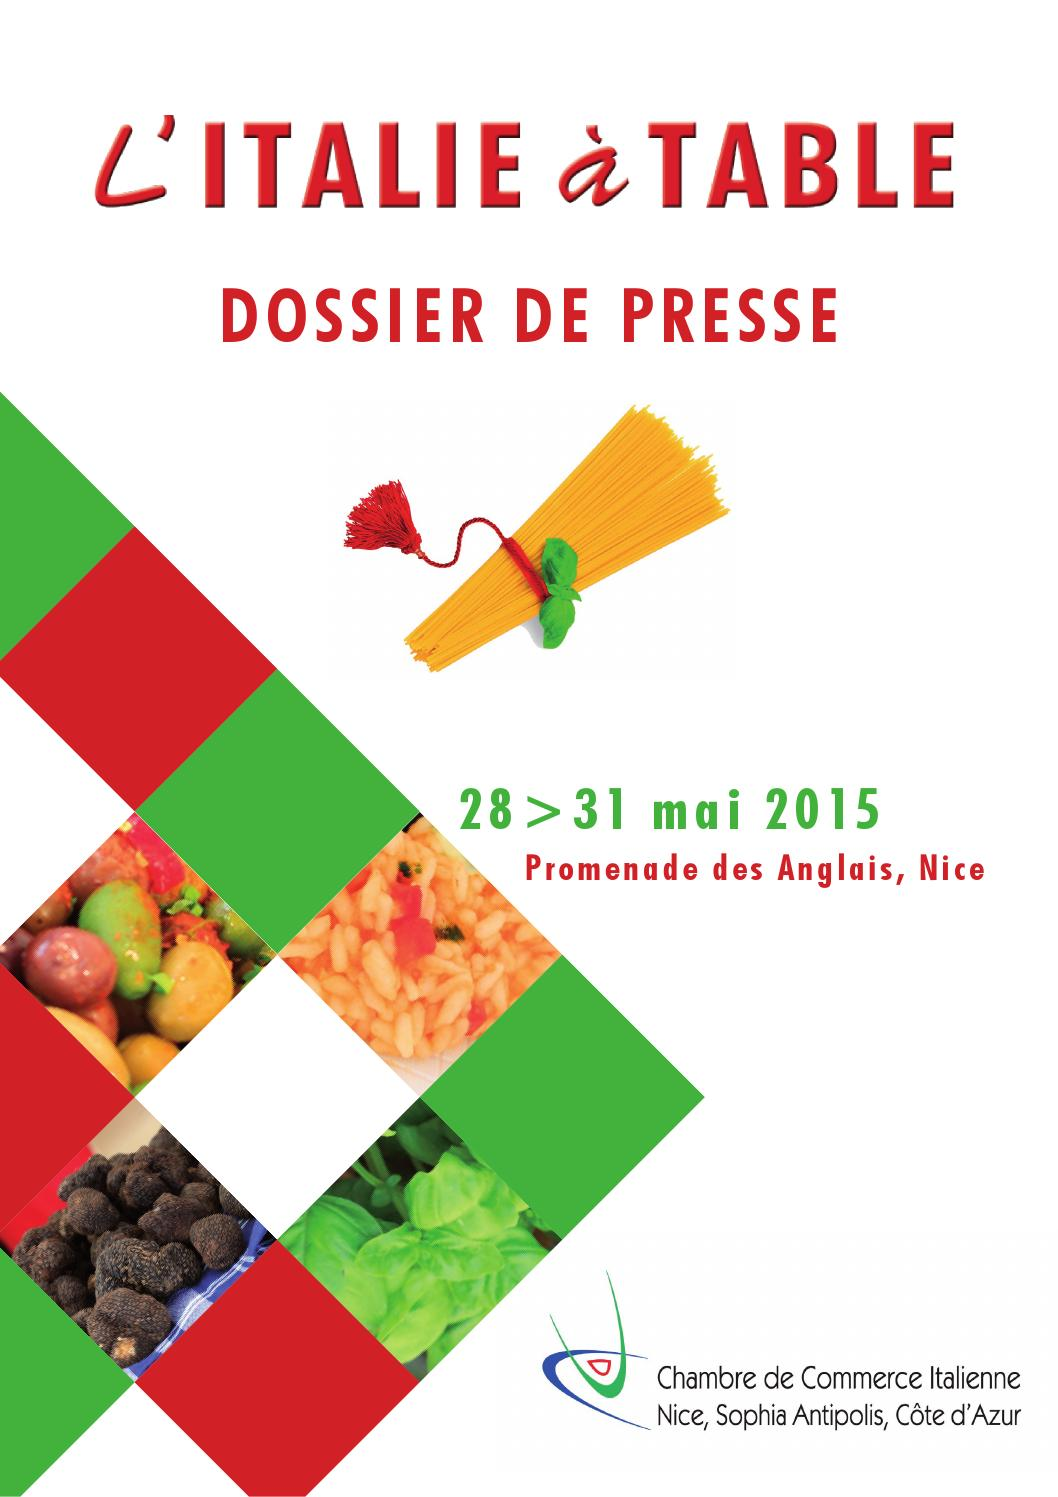 L 39 italie table 2015 dossier de presse by chambre de for Chambre de commerce italienne nice